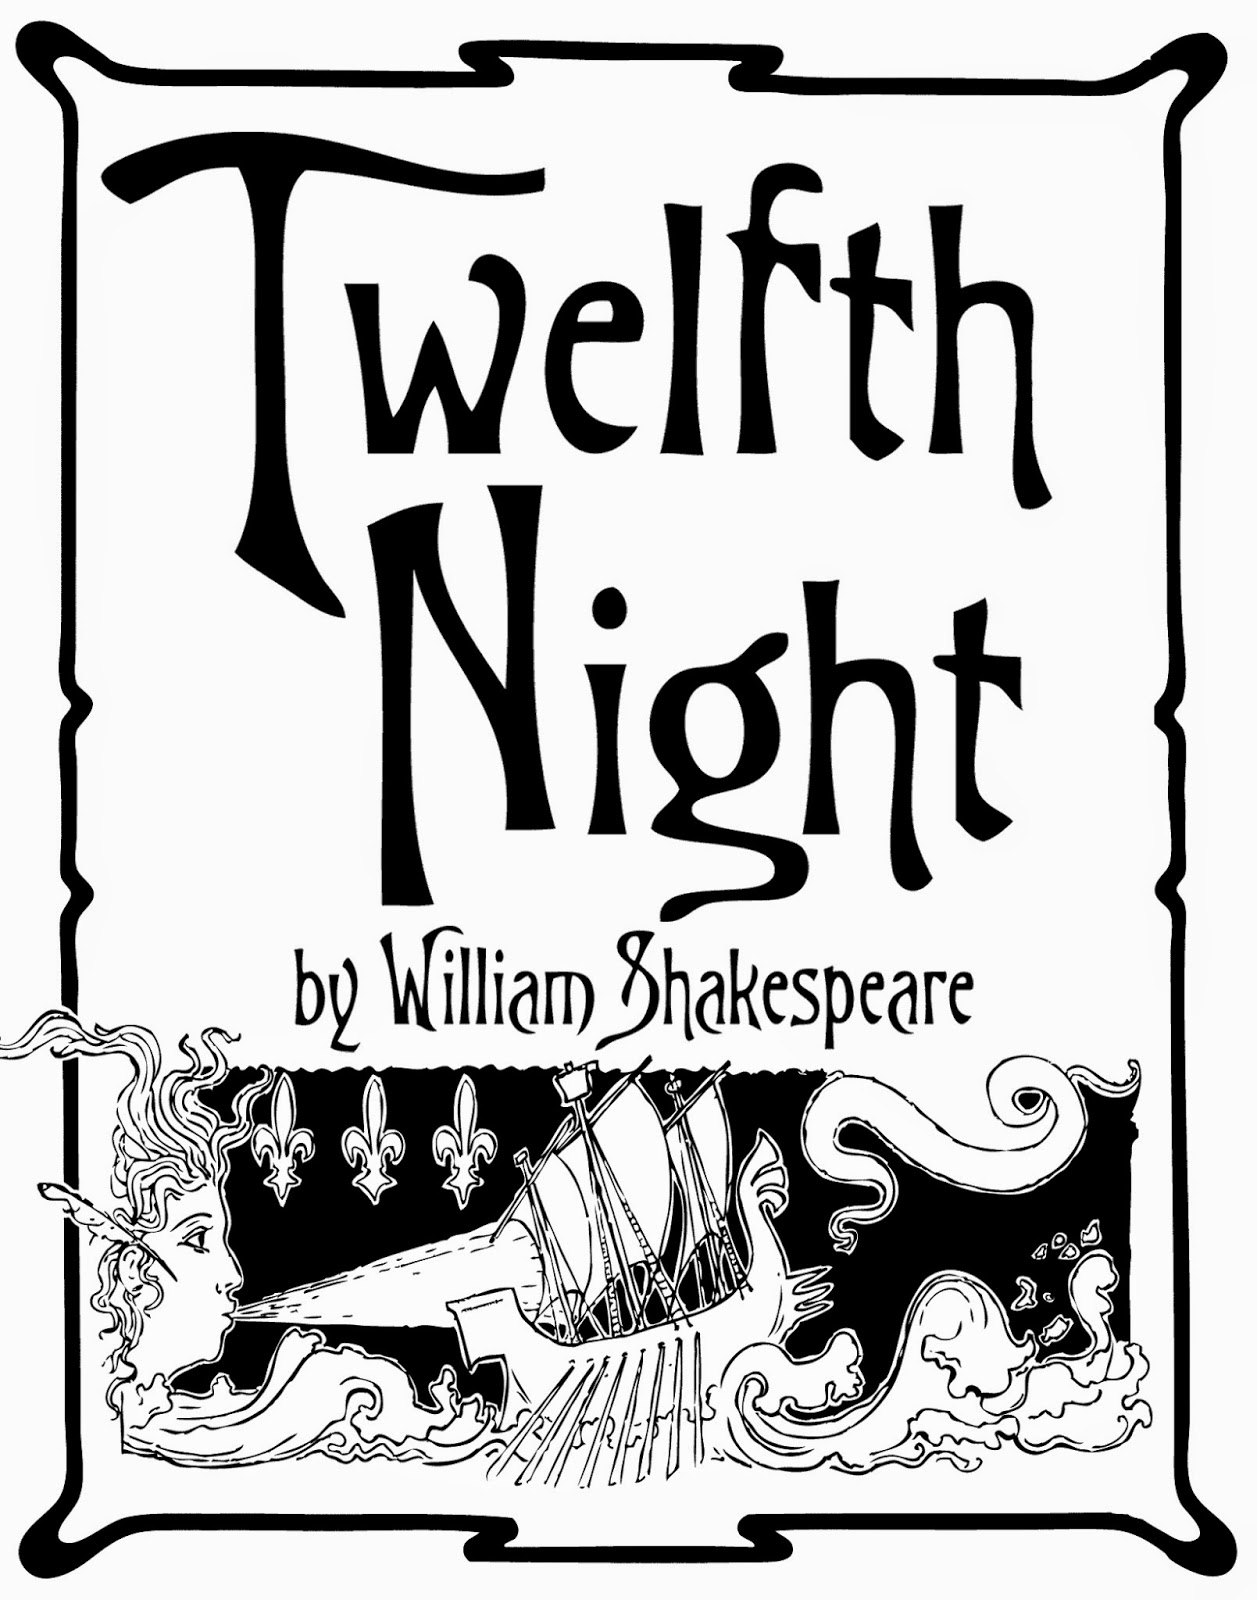 William Shakespeare wrote a comedy with the name, which is